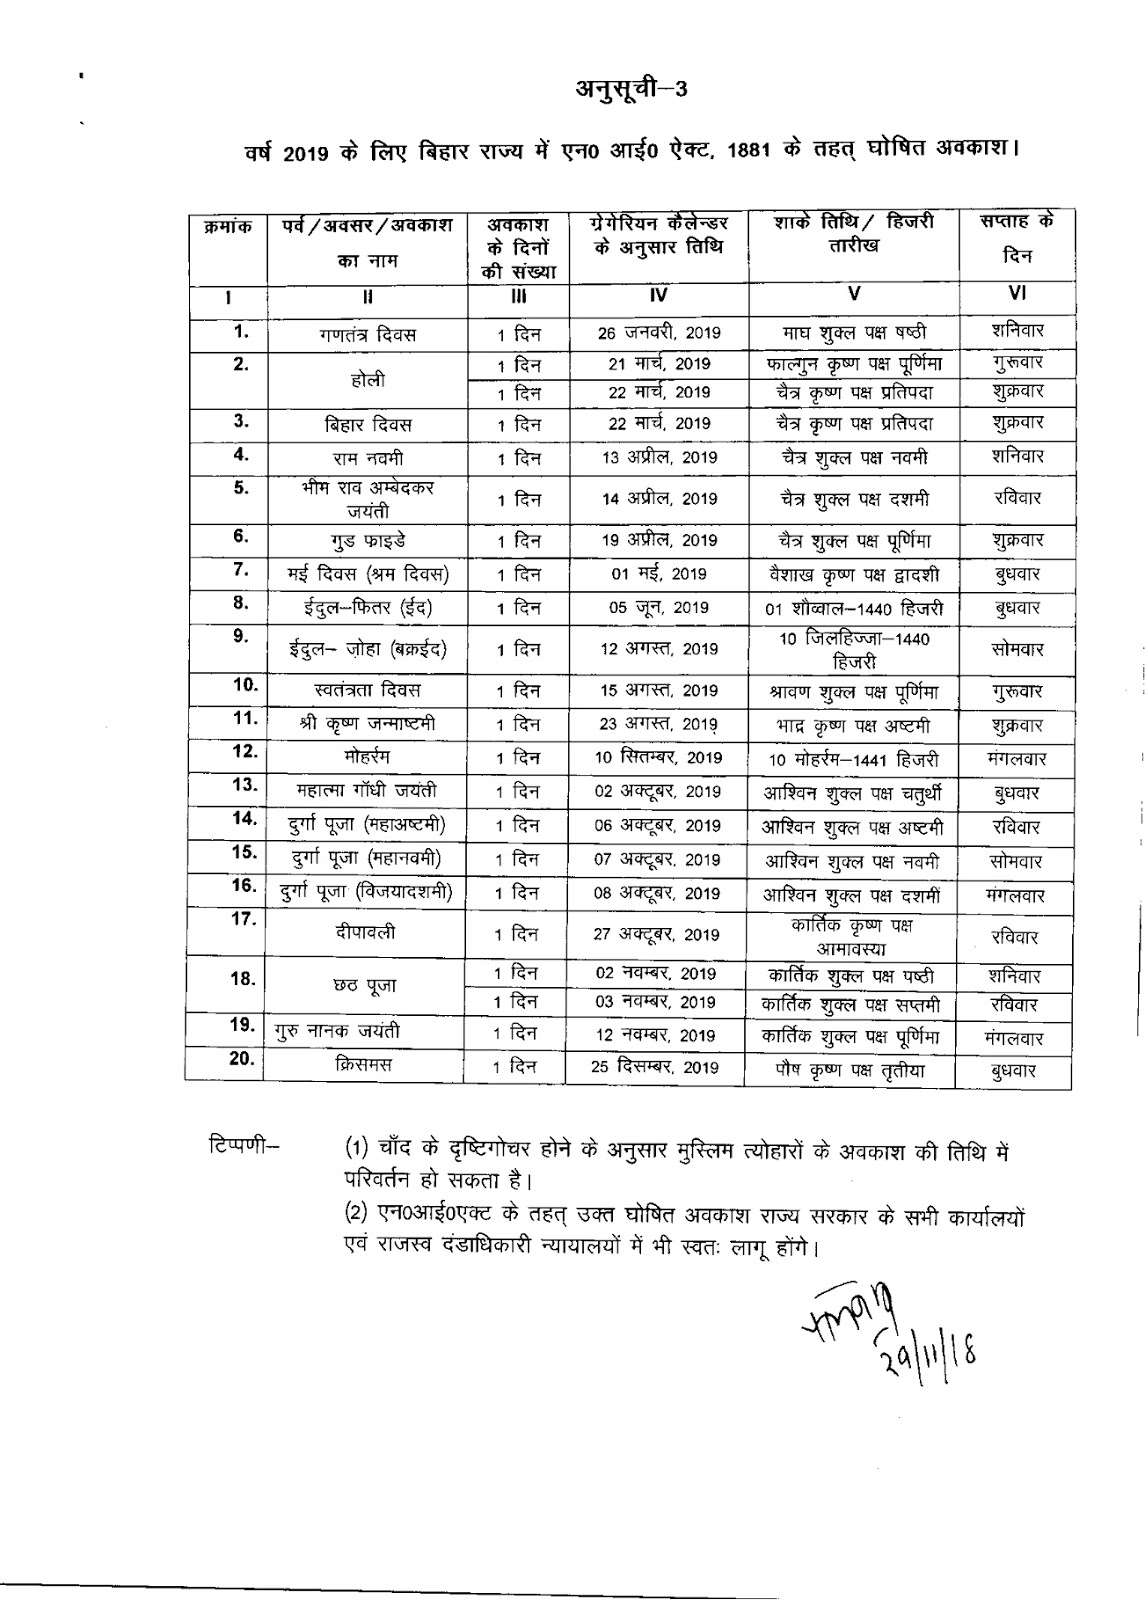 Bihar Government Calendar 2019 pertaining to Bihar Sarkar Calender